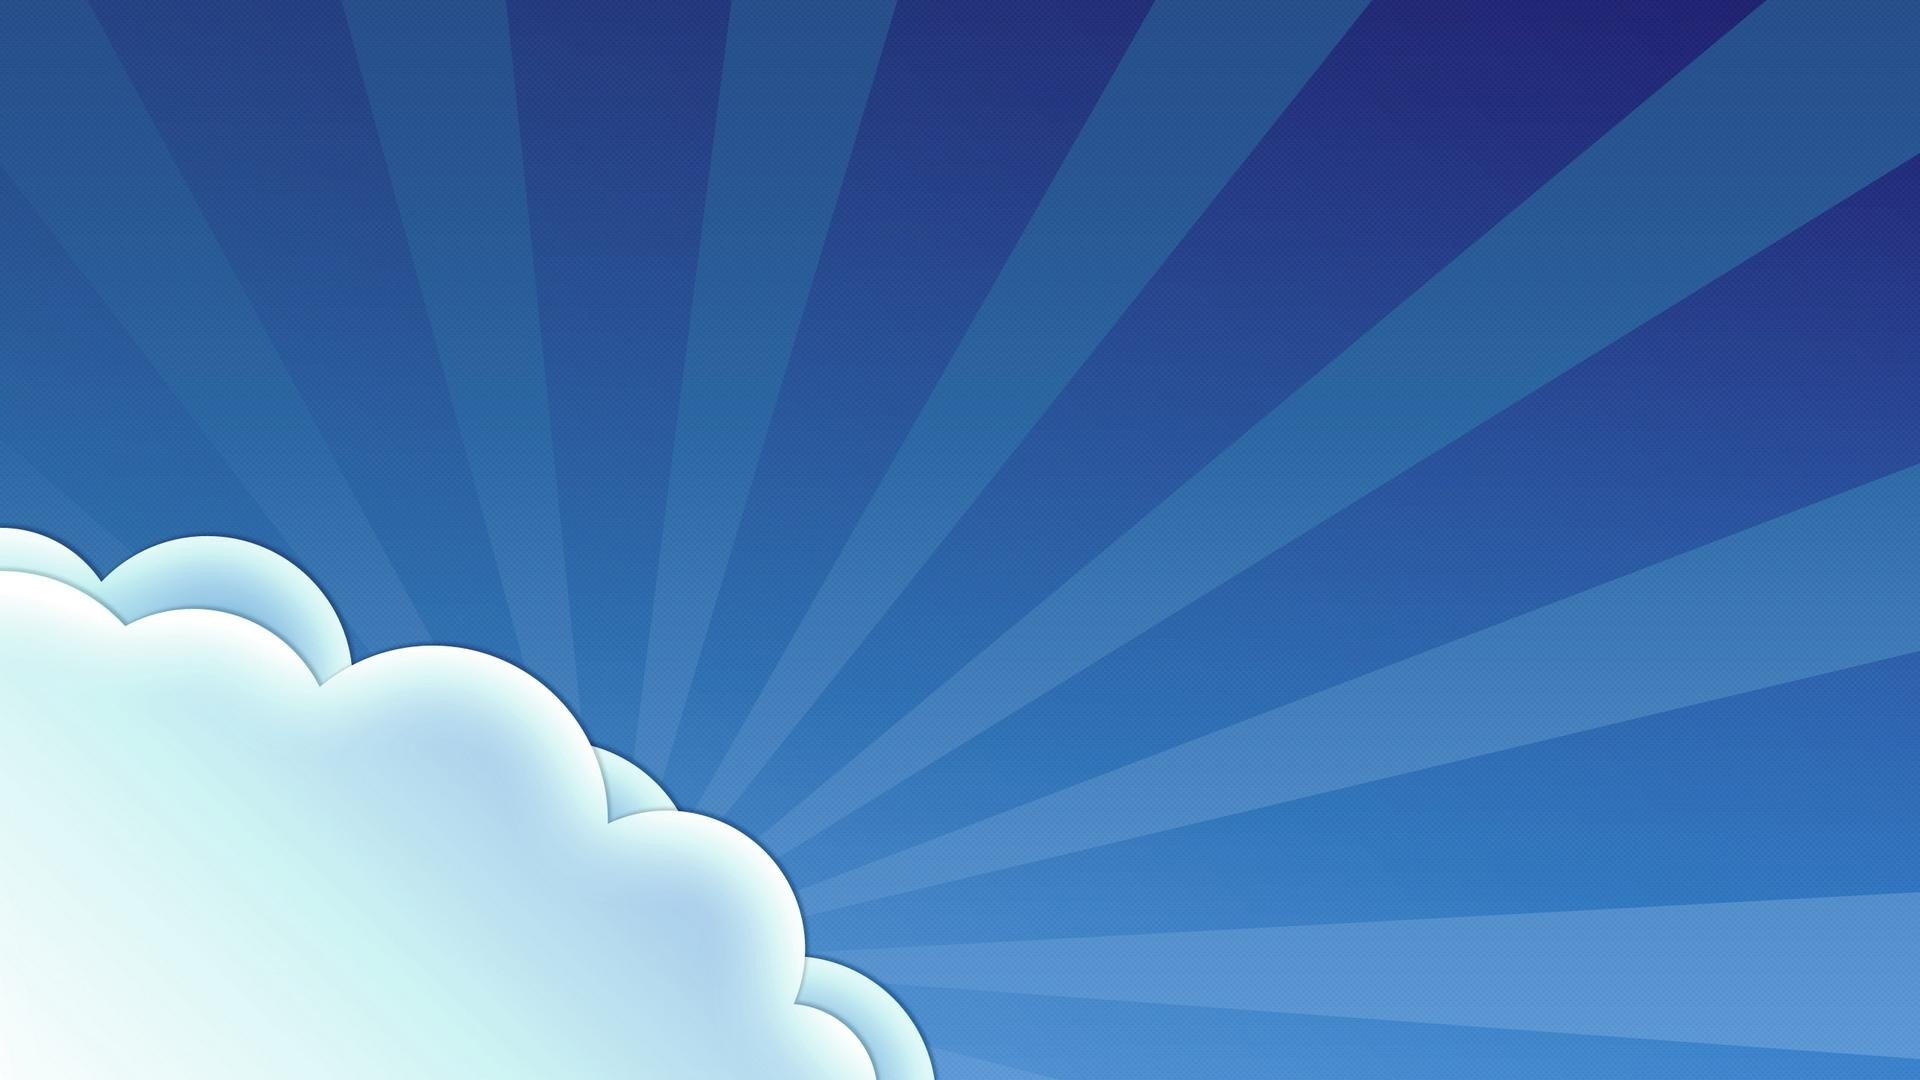 1920x1080 Vector Blue Sky And White Clouds Desktop Backgrounds Widescreen